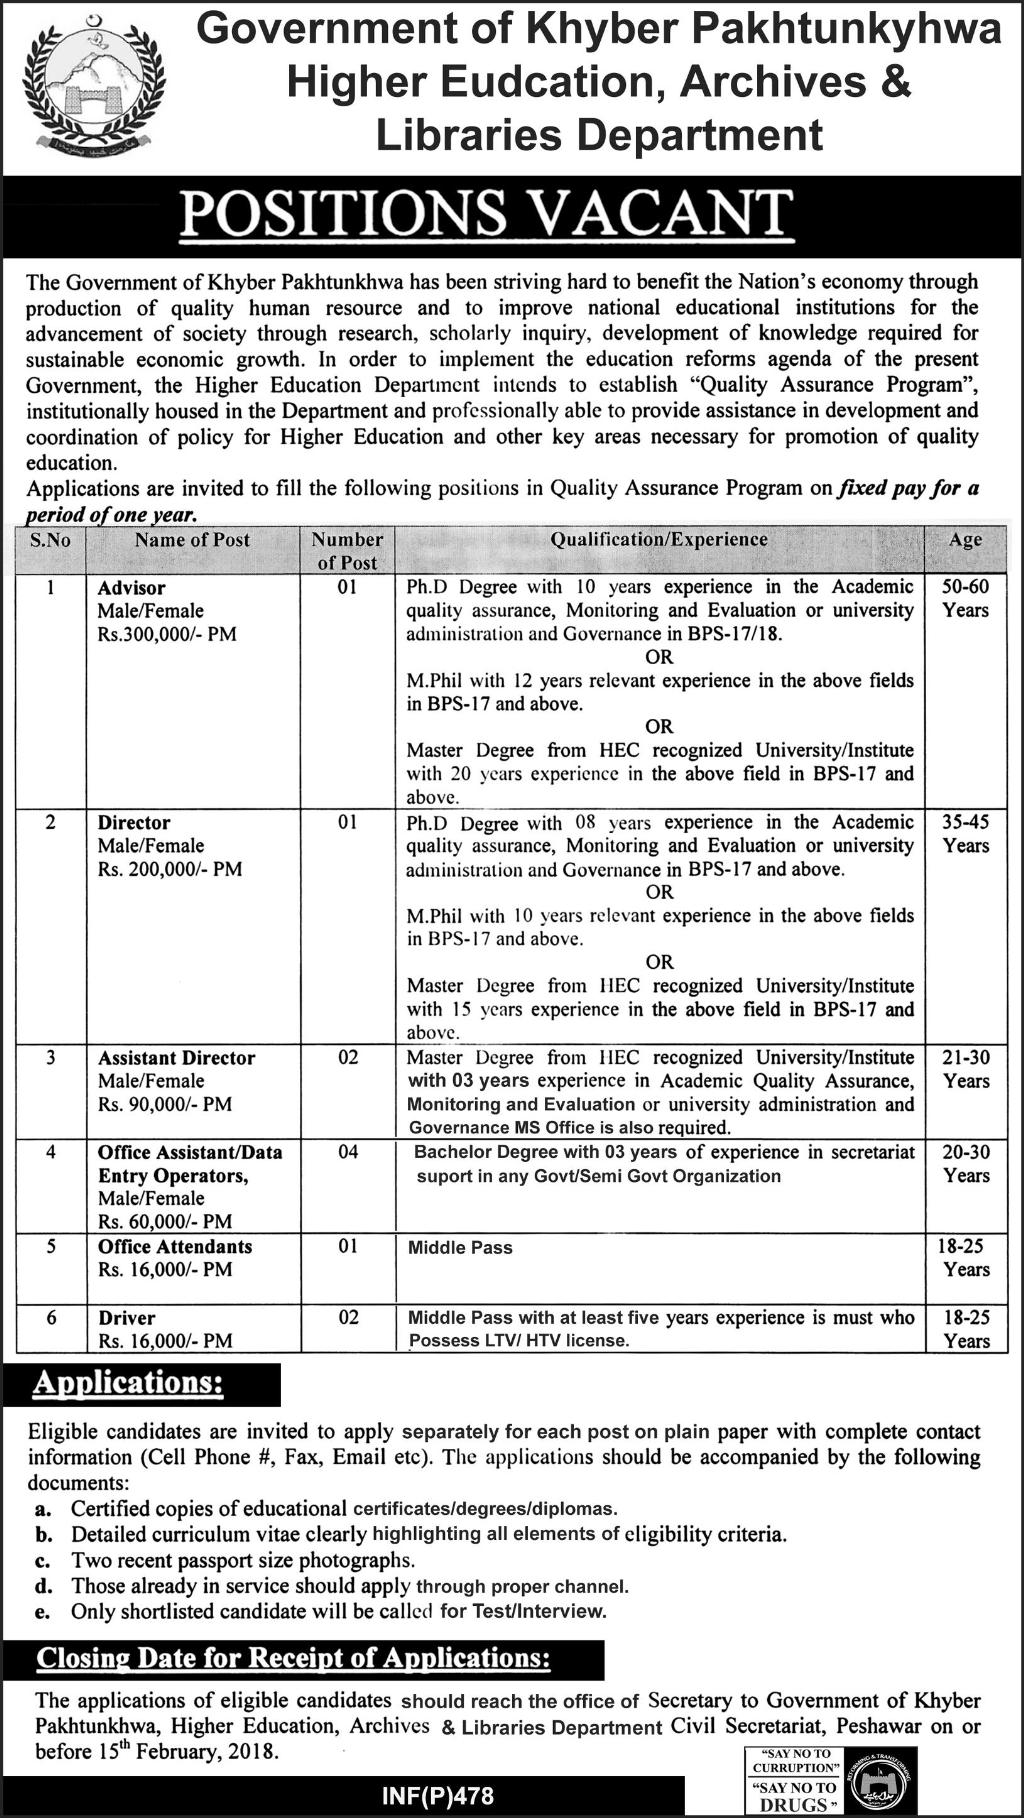 Higher Education archives & Libraries Department 11 jobs 29 January 2018, Daily Express Newspaper